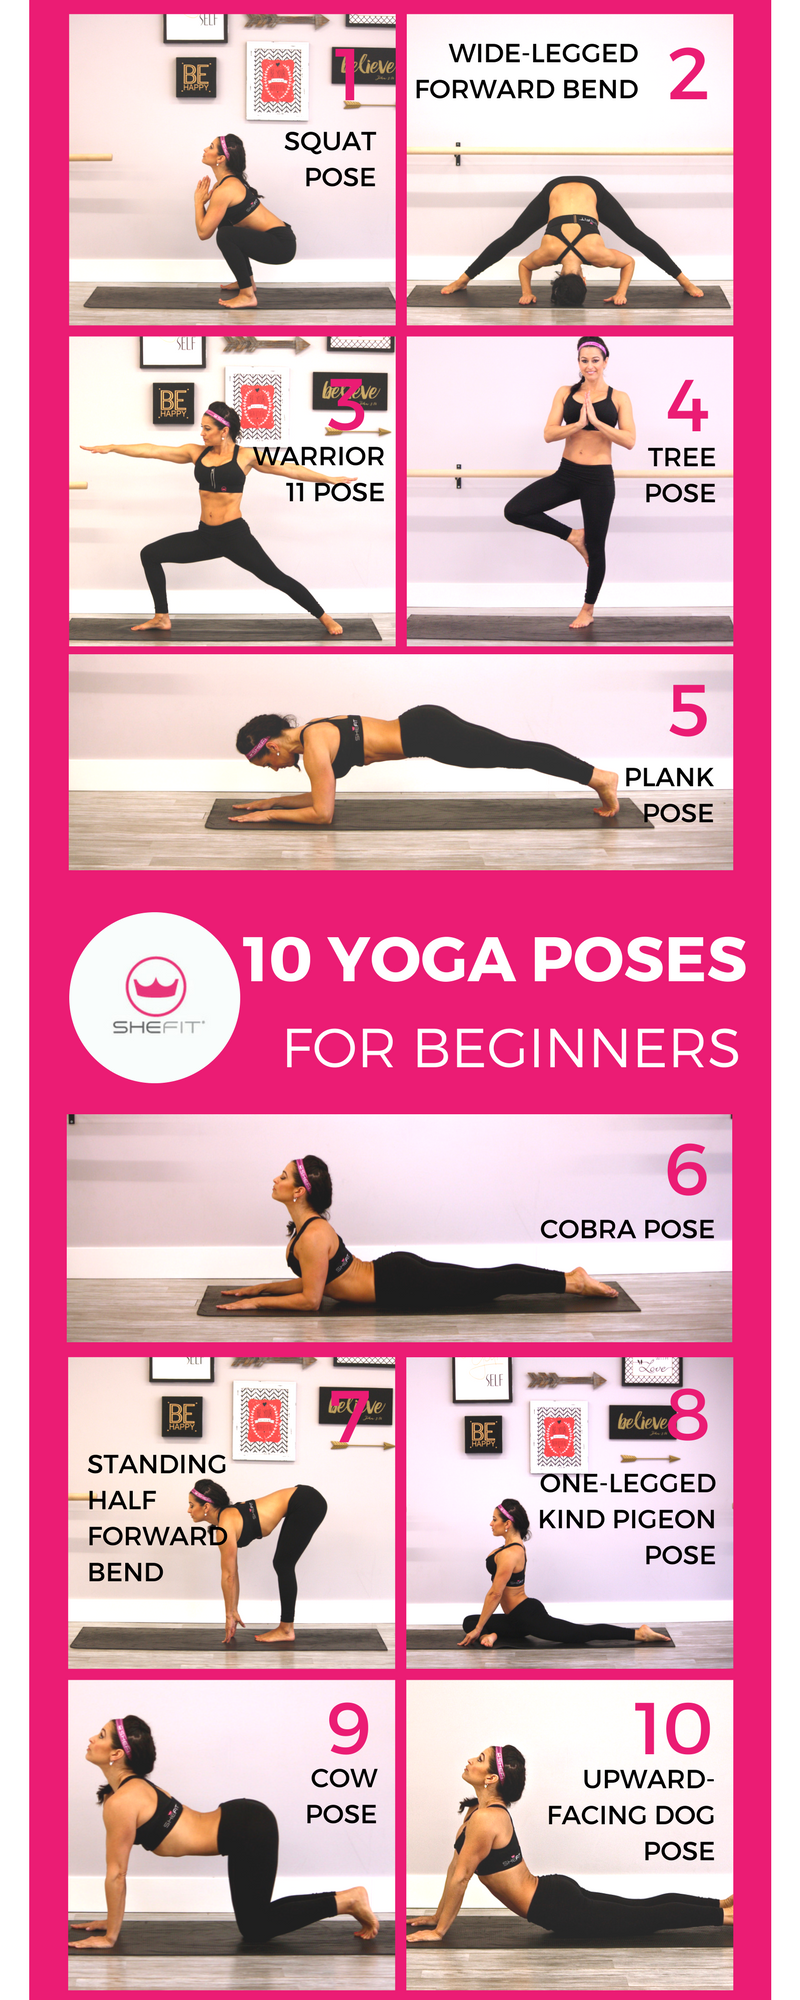 Yoga can actually lower the levels of stress hormones in your body which then increases insulin sensitivity. This signals your body to burn food as fuel rather than store it as fat thus leading to weight loss. Click to learn 10 yoga poses for beginners you can do at home. | Inspiration | Flexibility Routine | Weight loss Lifestyles Benefits | Toning + Stress